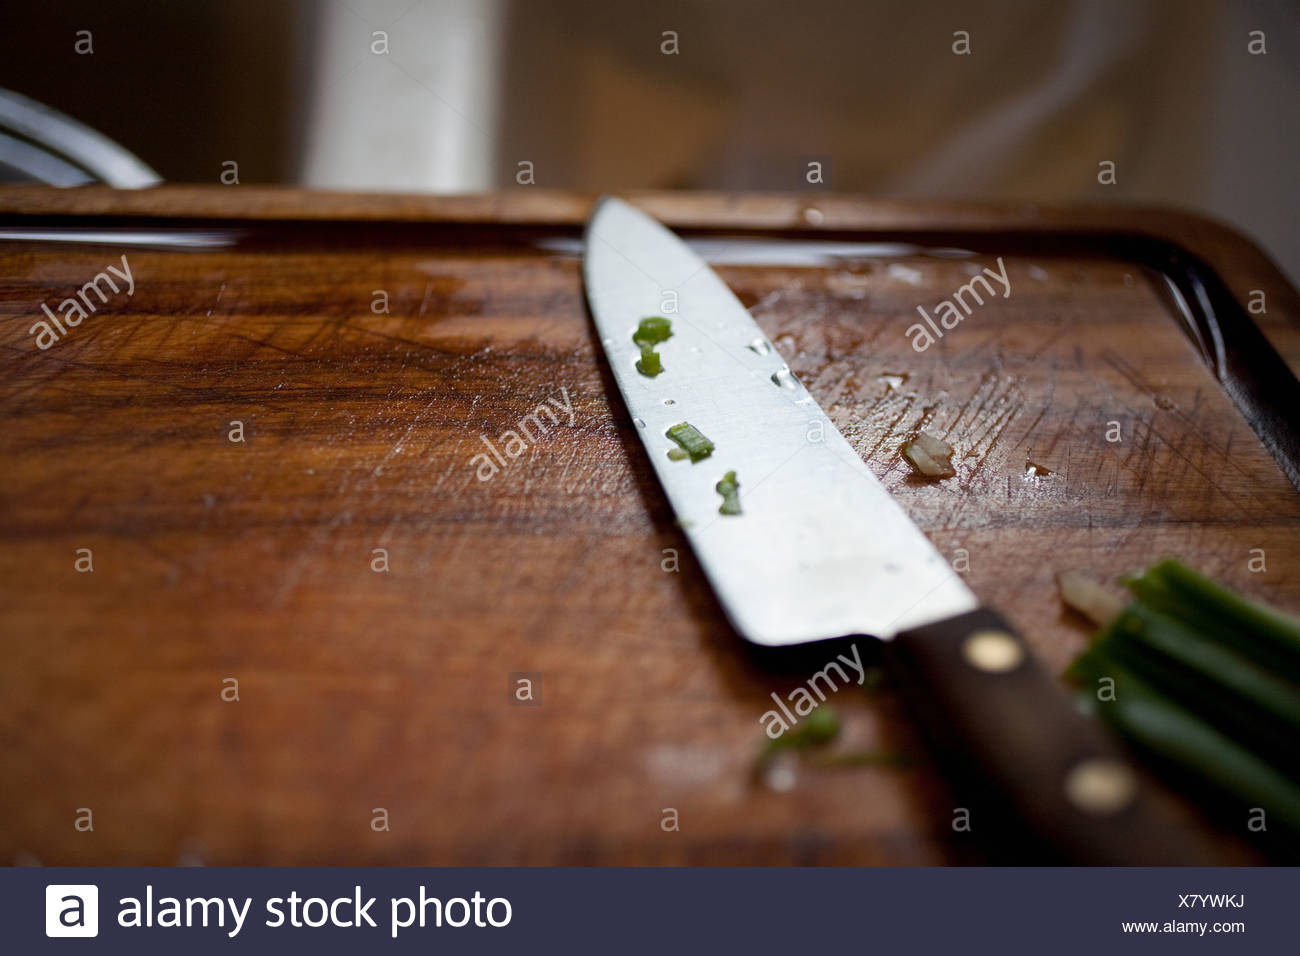 Kitchen knife on wooden chopping board - Stock Image